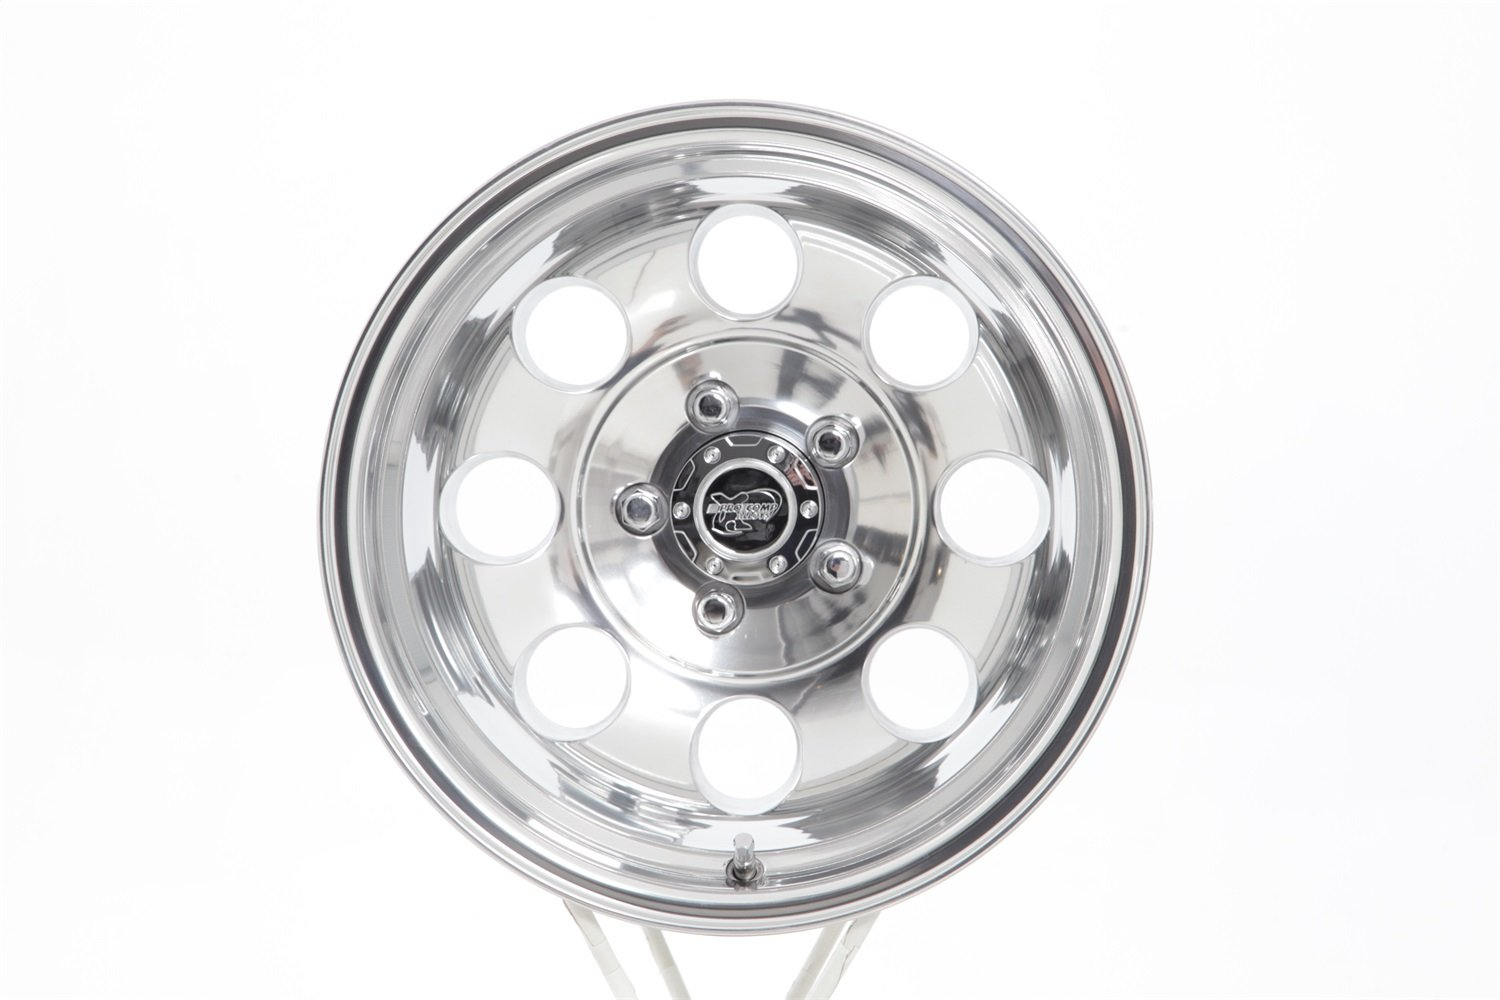 Pro Comp Alloys Series 69 Wheel with Polished Finish (16x10''/5x139.7mm) by Pro Comp Alloys (Image #3)